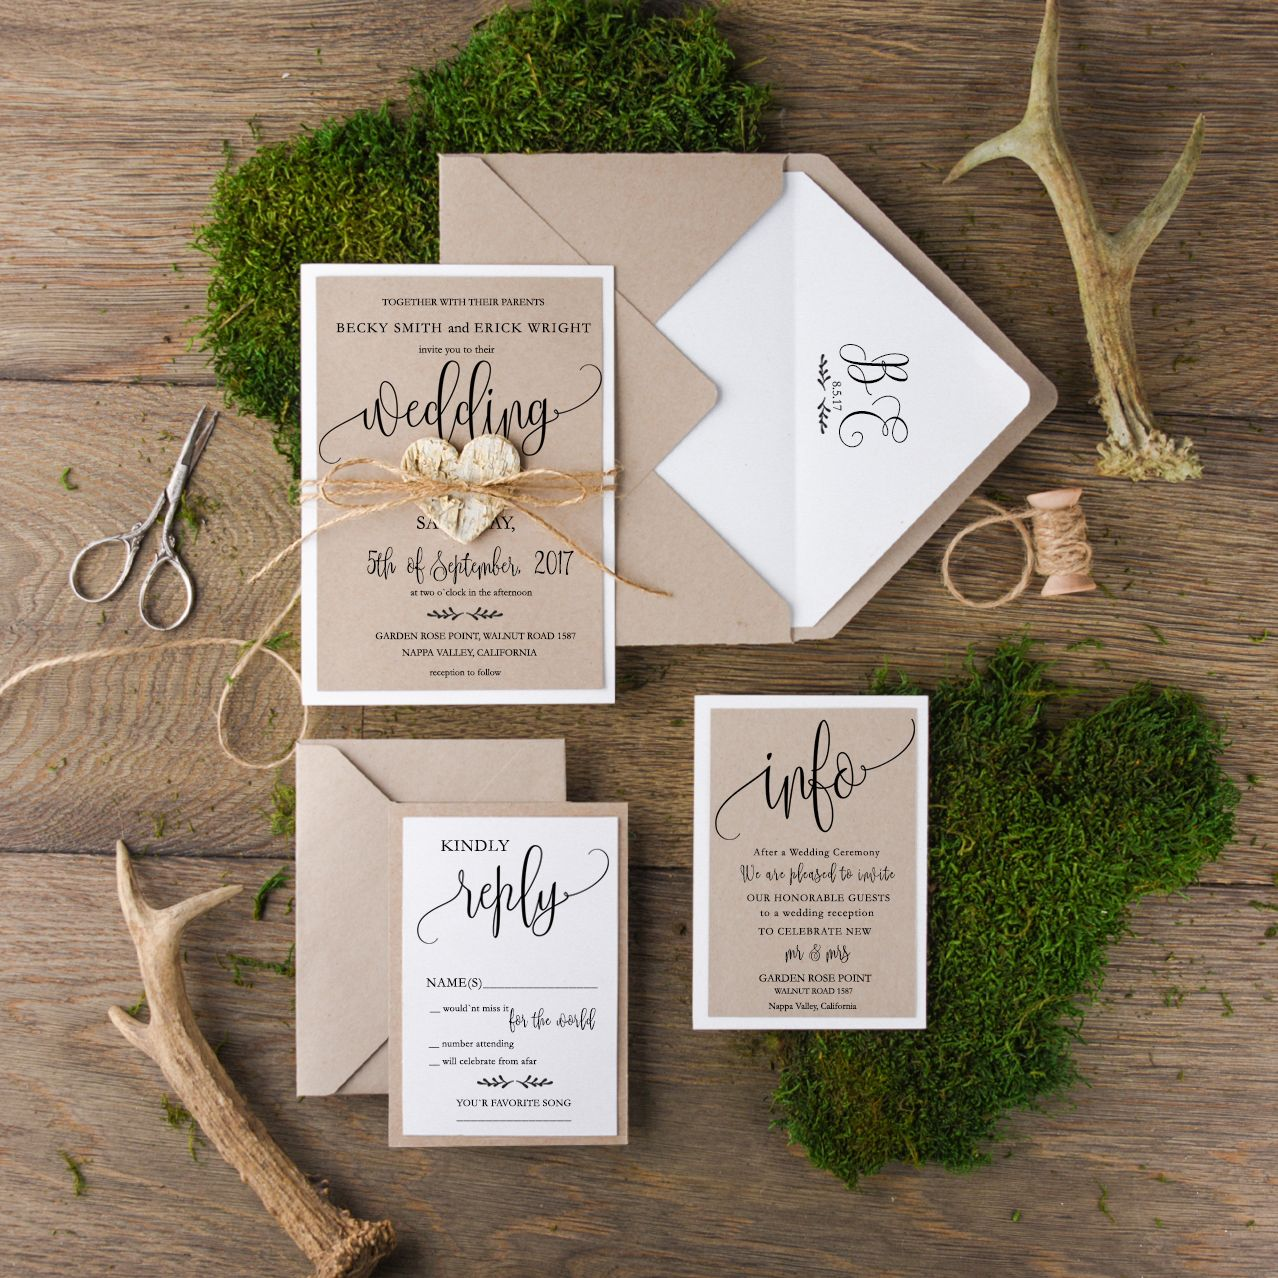 wedding invitation wording vegetarian option%0A Let our designers create dream wedding invitations especially for you